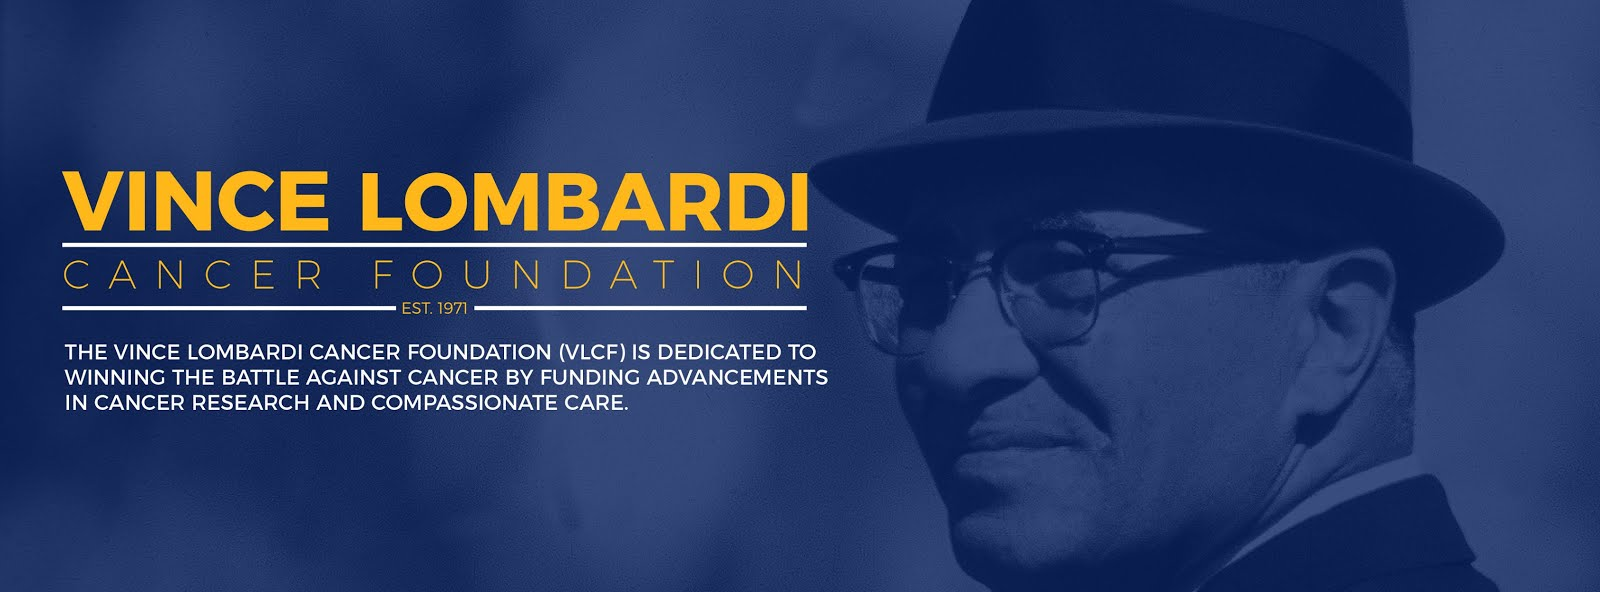 LOMBARDI CANCER FOUNDATION